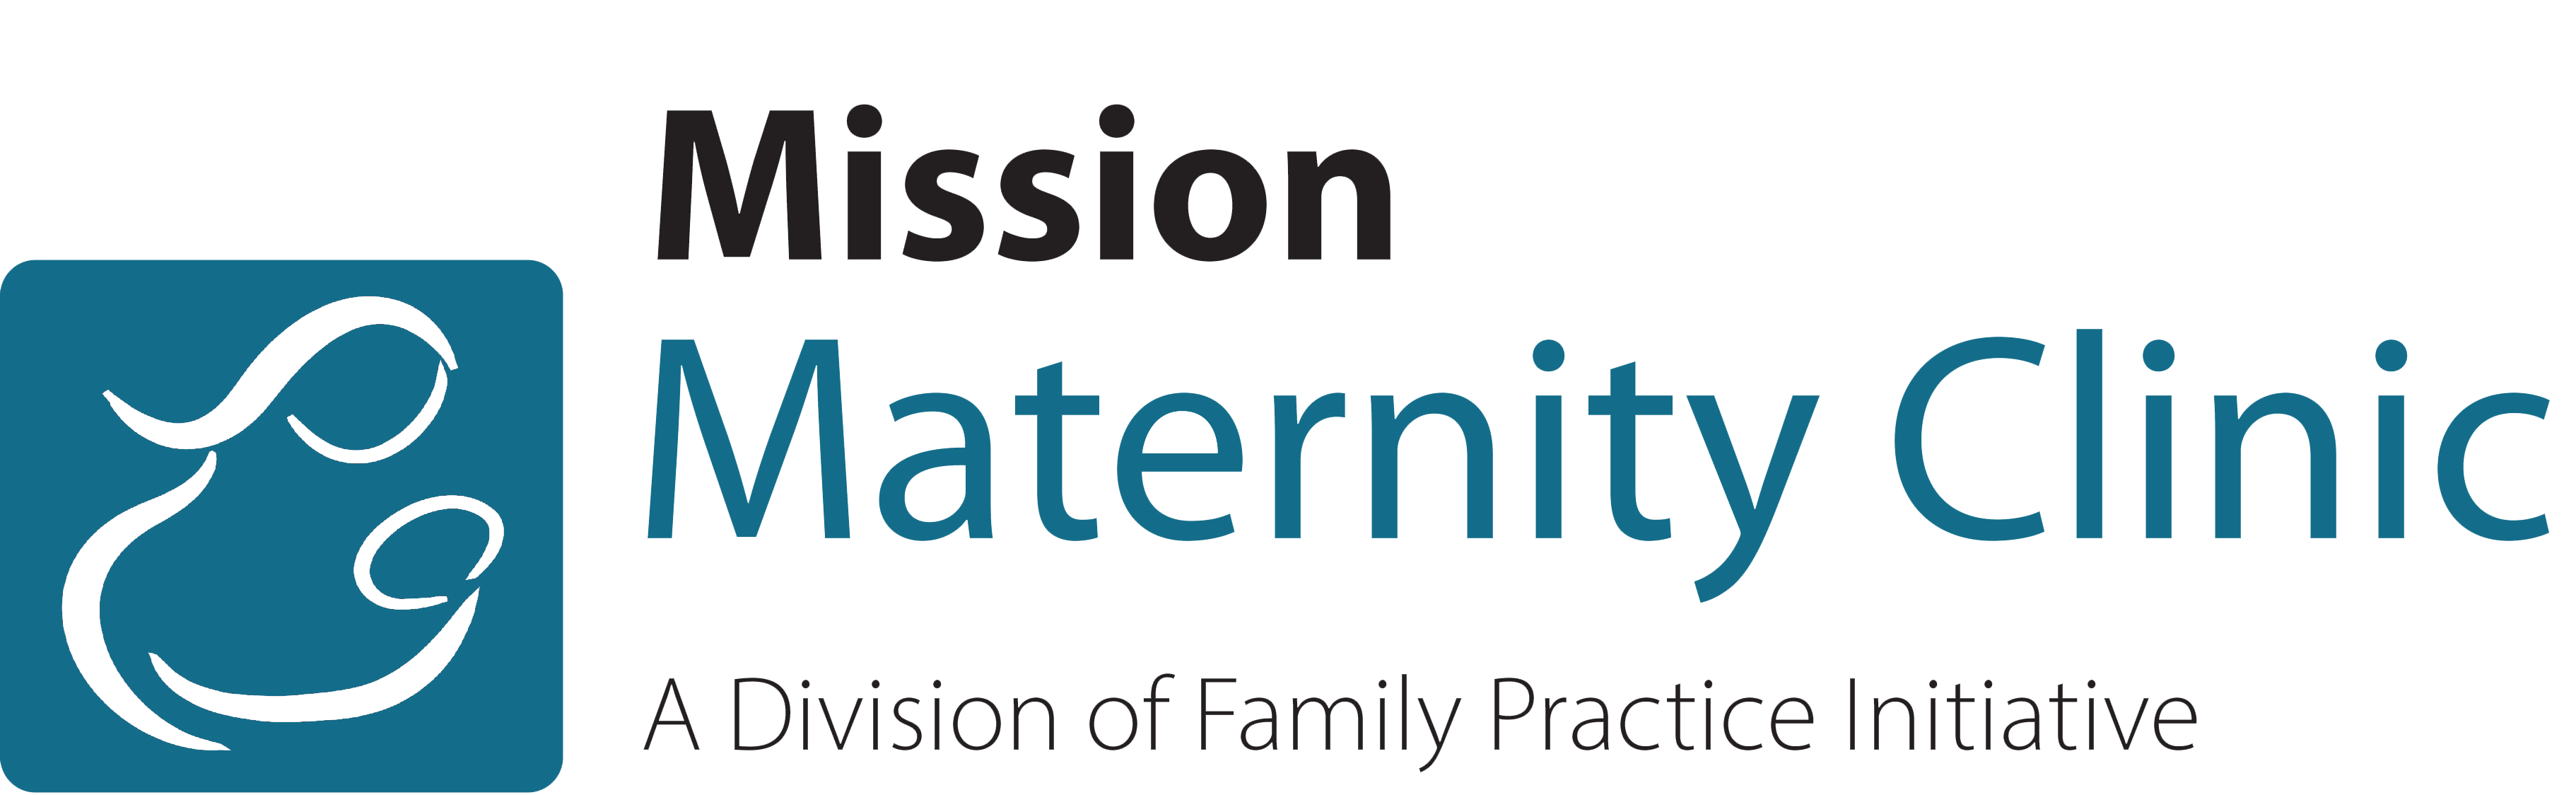 Mission Maternity